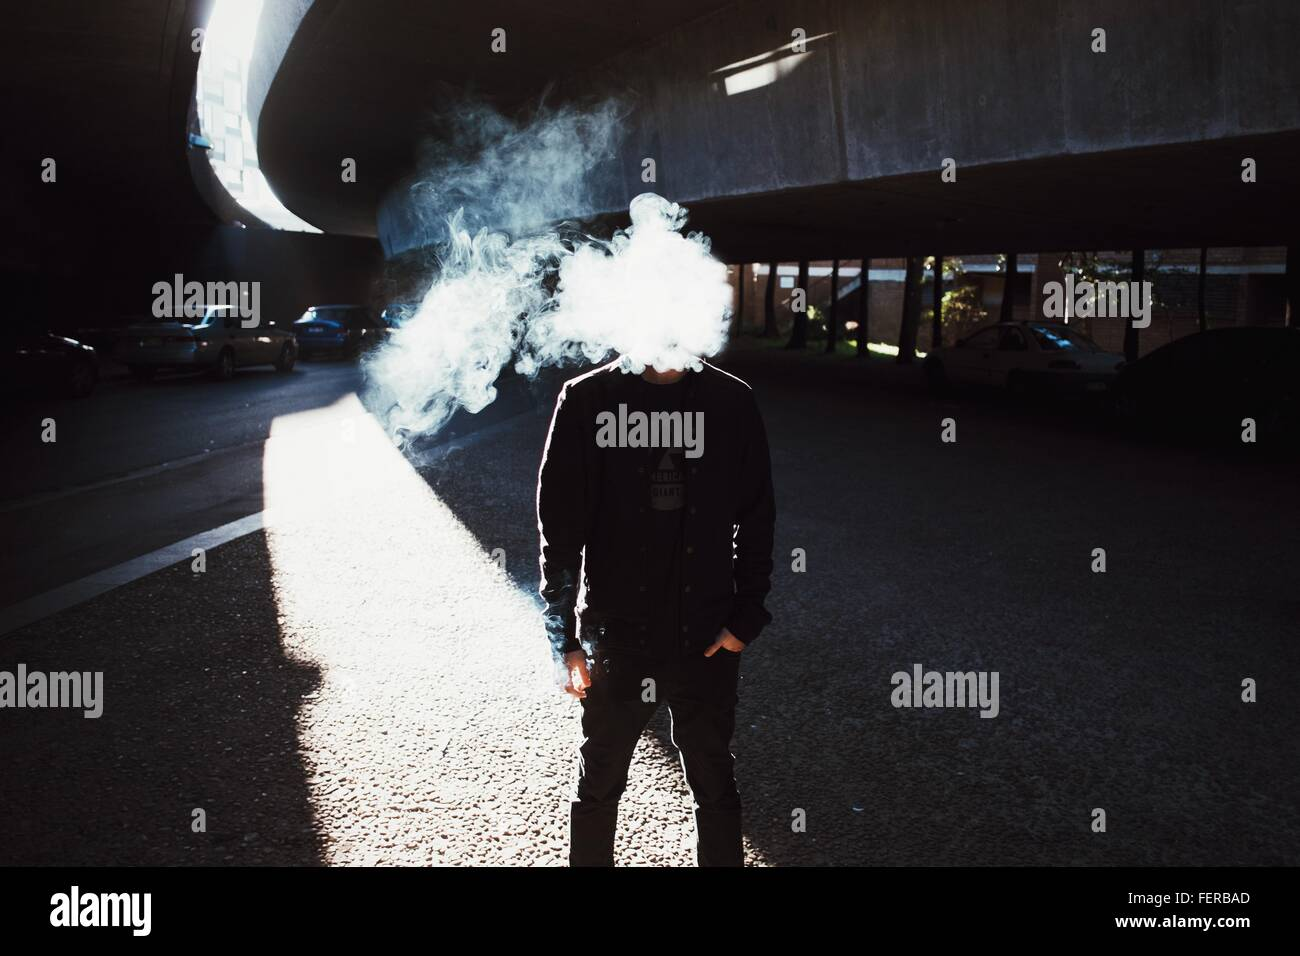 67eae9e9c58 Man Face Covered With Smoke Standing Below Bridge - Stock Image